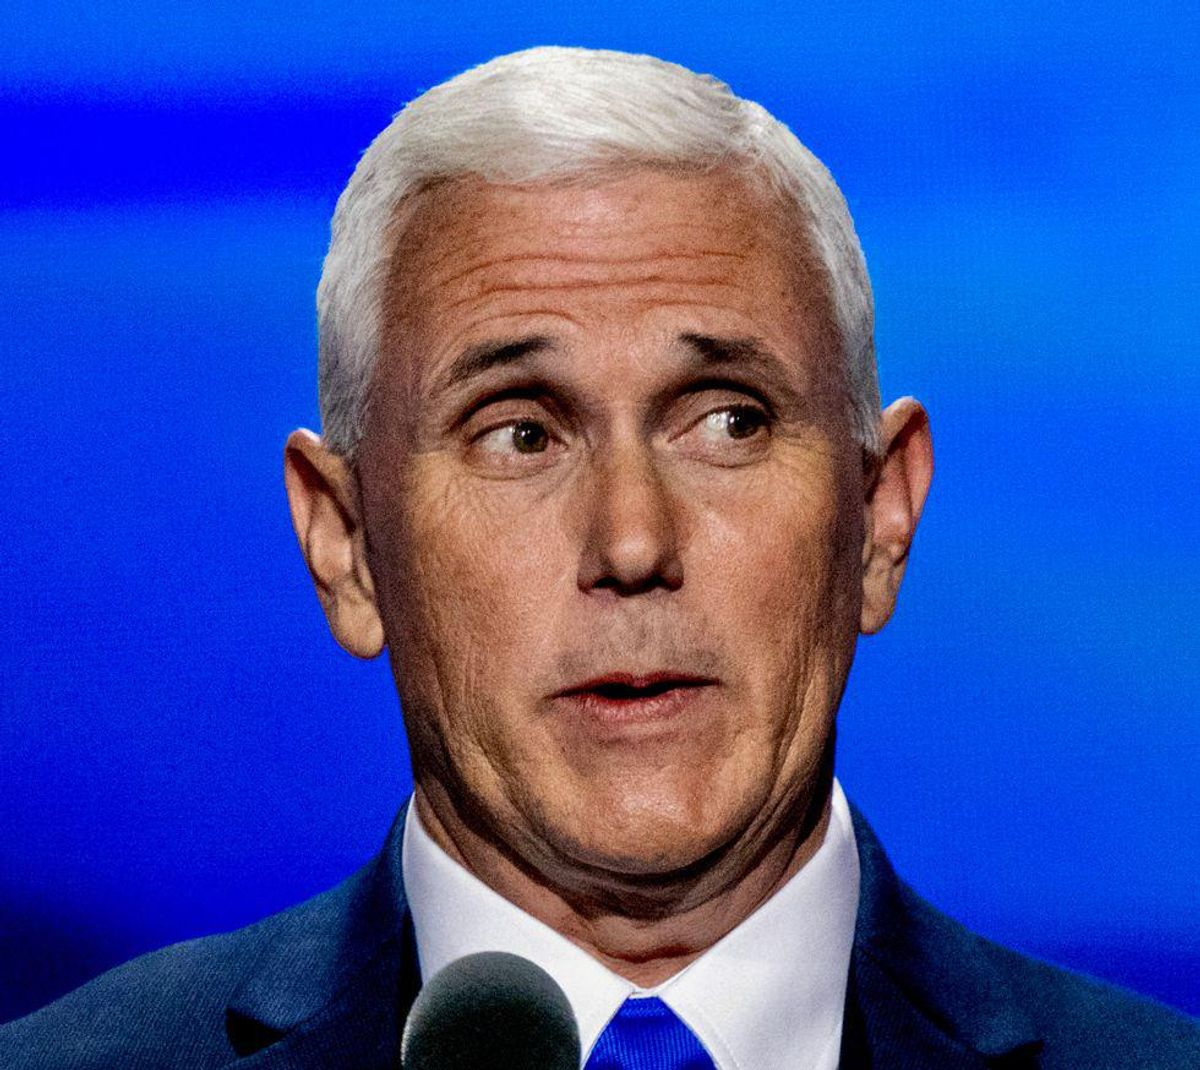 Trump's generals weren't the only ones: Did Mike Pence fear a coup too?